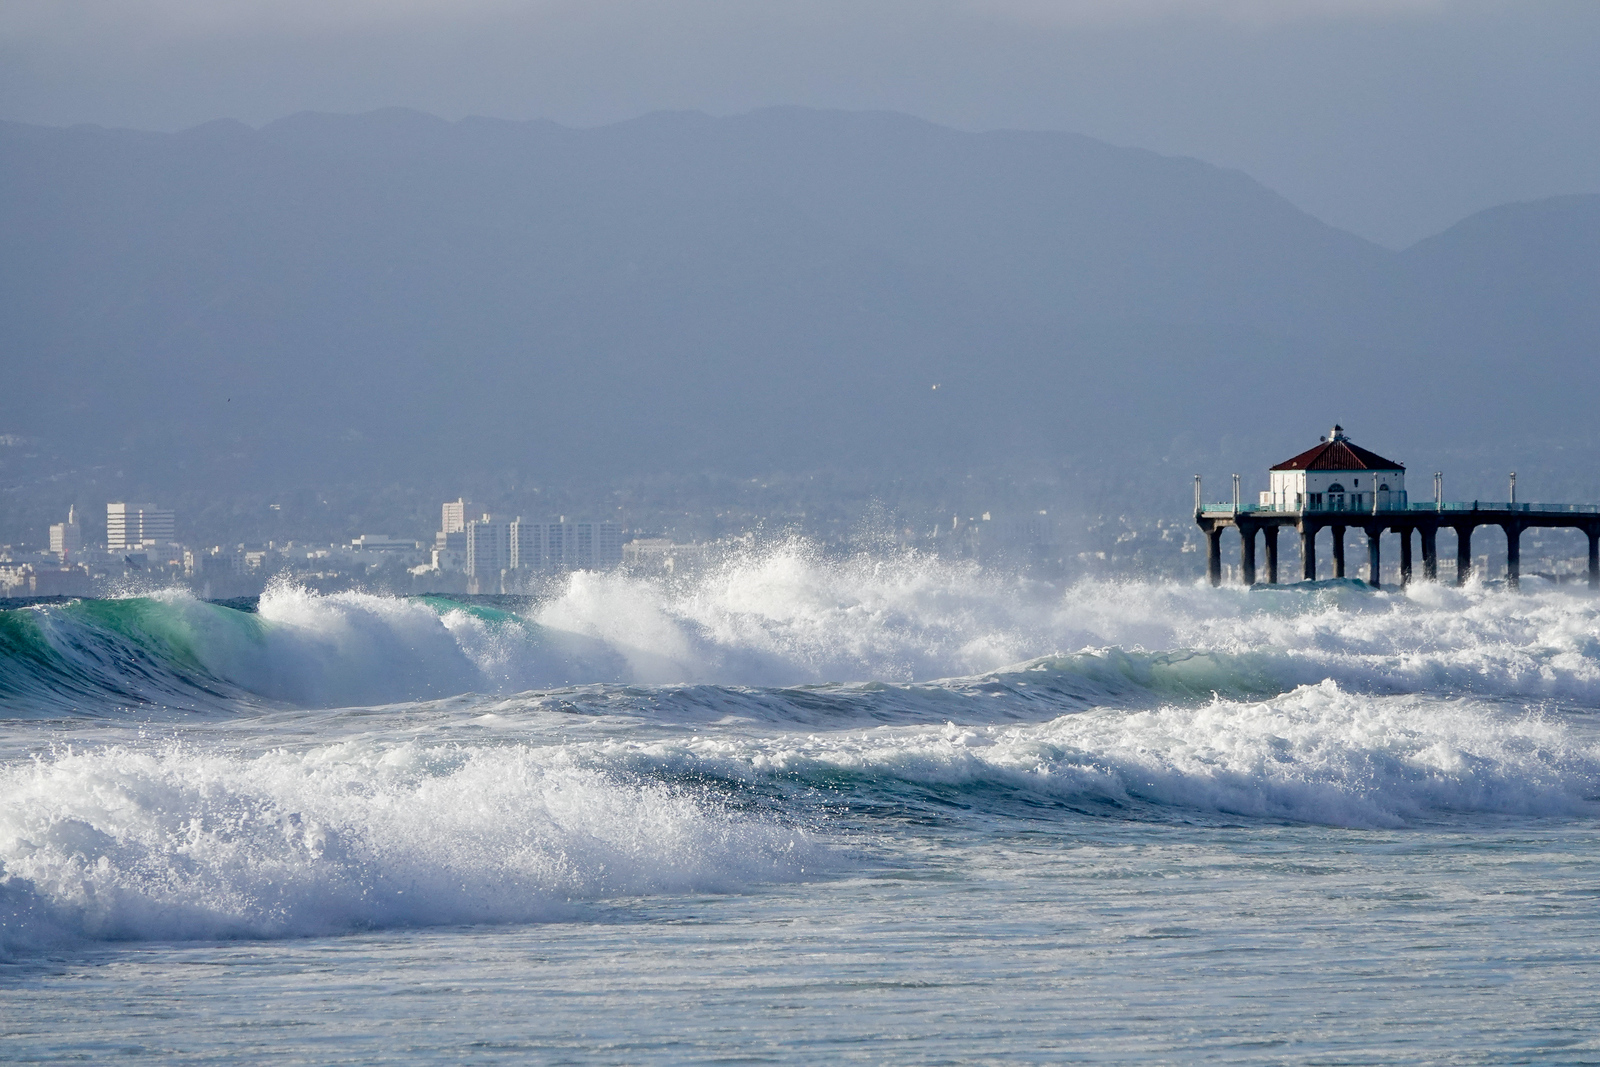 A view of nearby Manhattan Beach and its Pier from Hermosa Beacj. You can also see Santa Monica to the left of the Pier